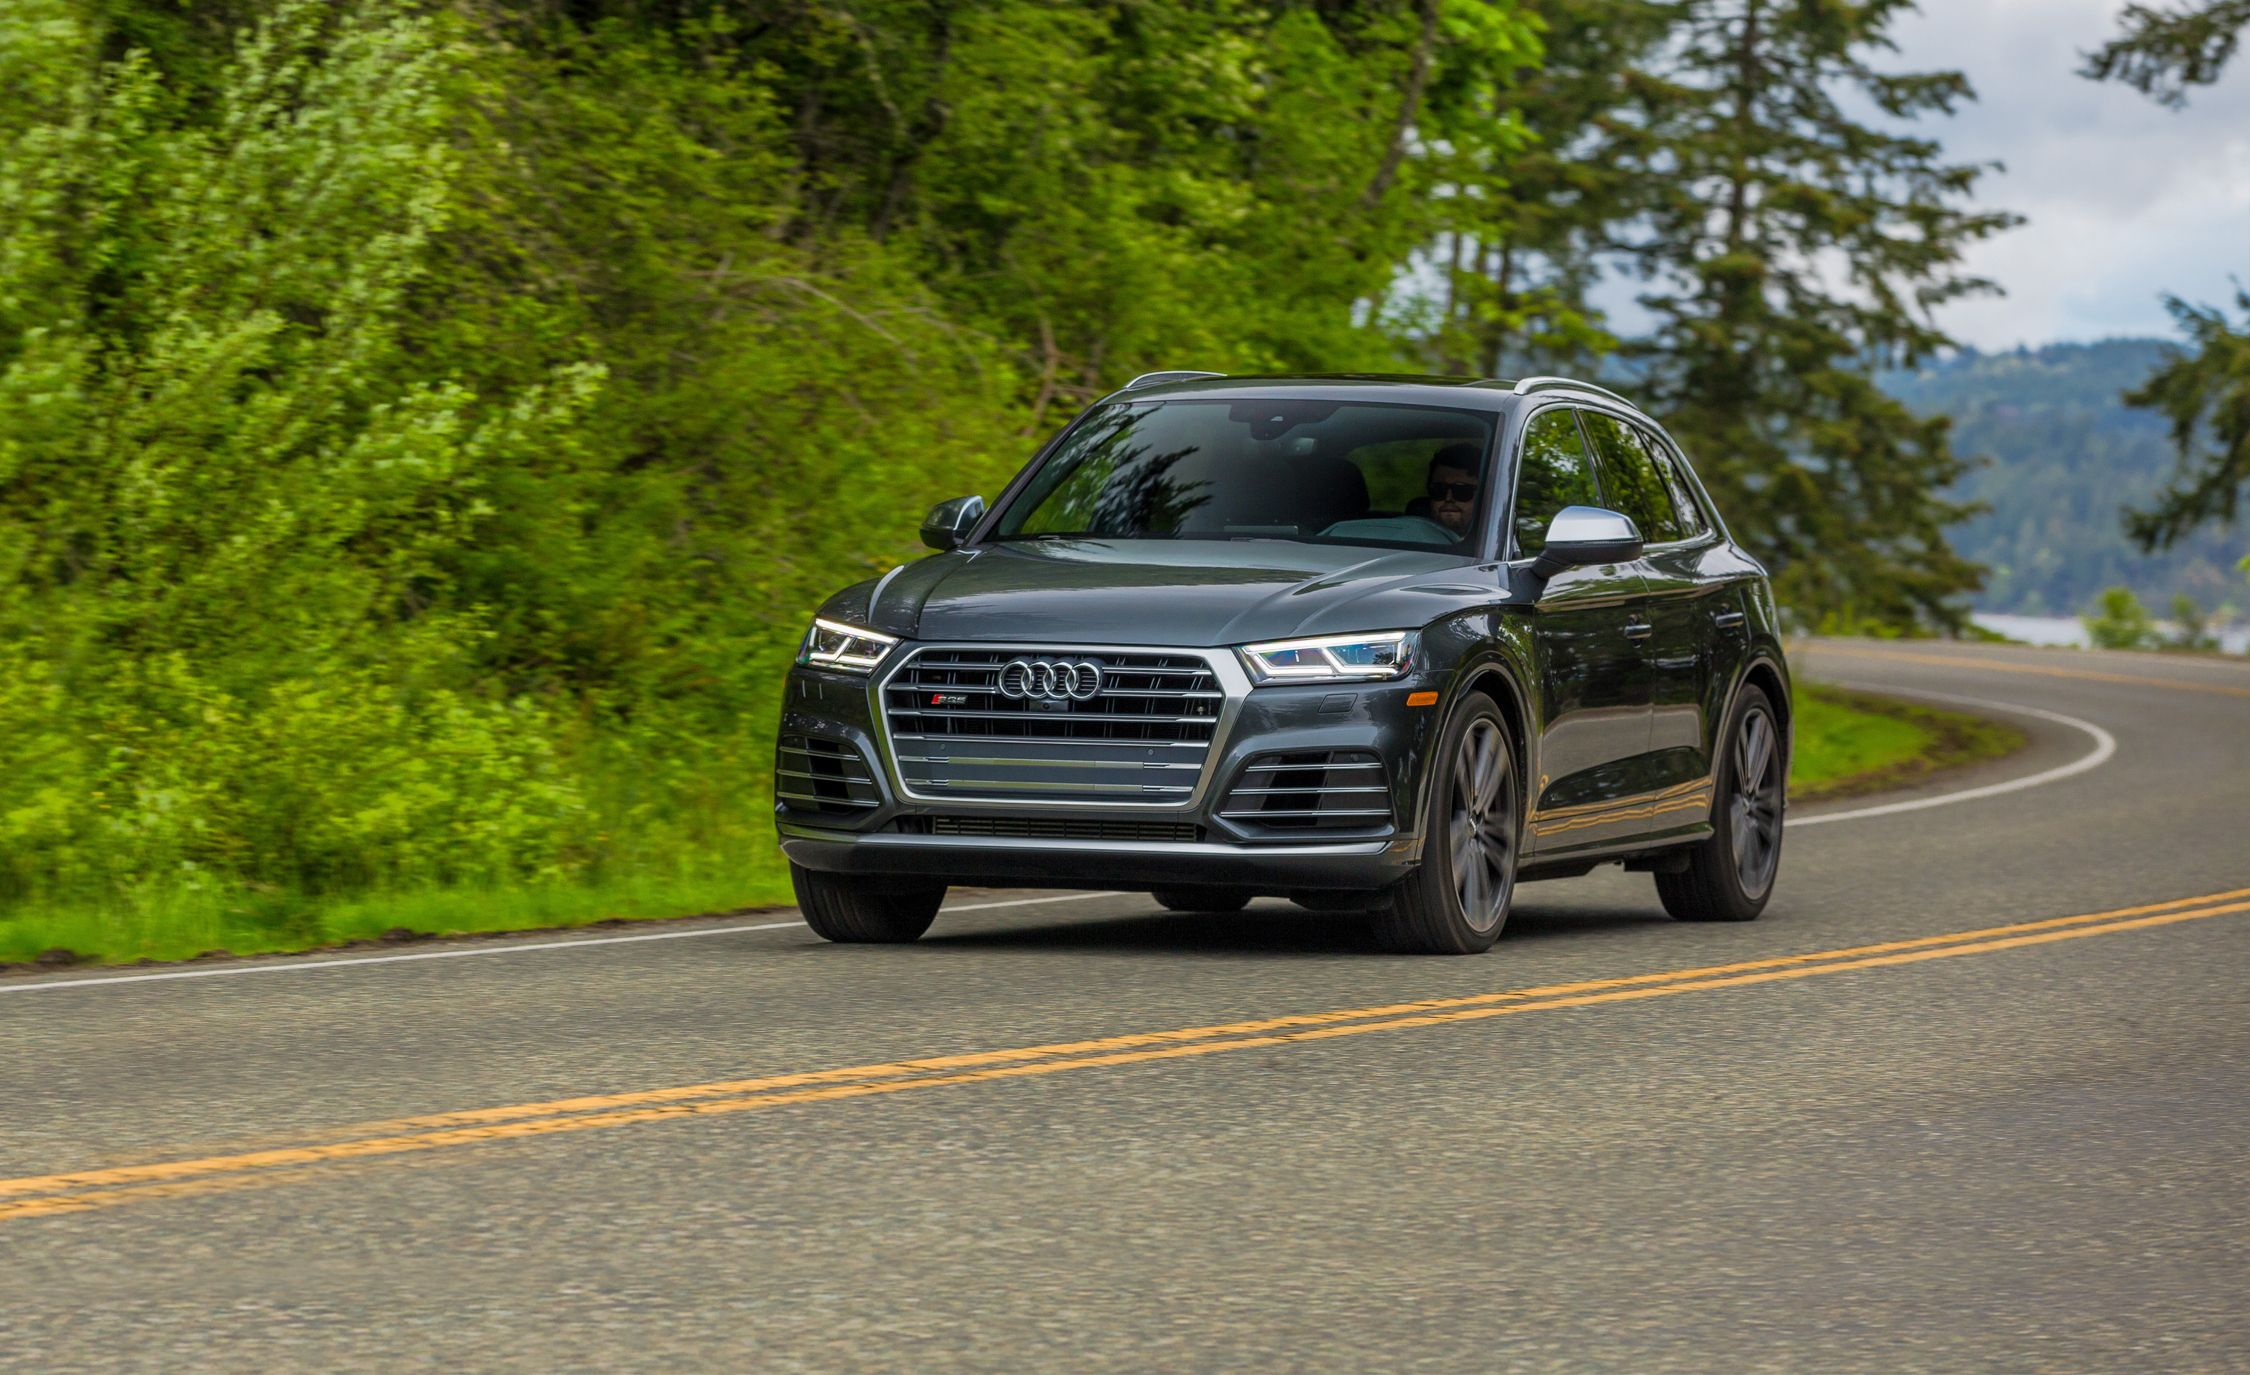 2018 Audi Sq5 First Drive Review Car And Driver